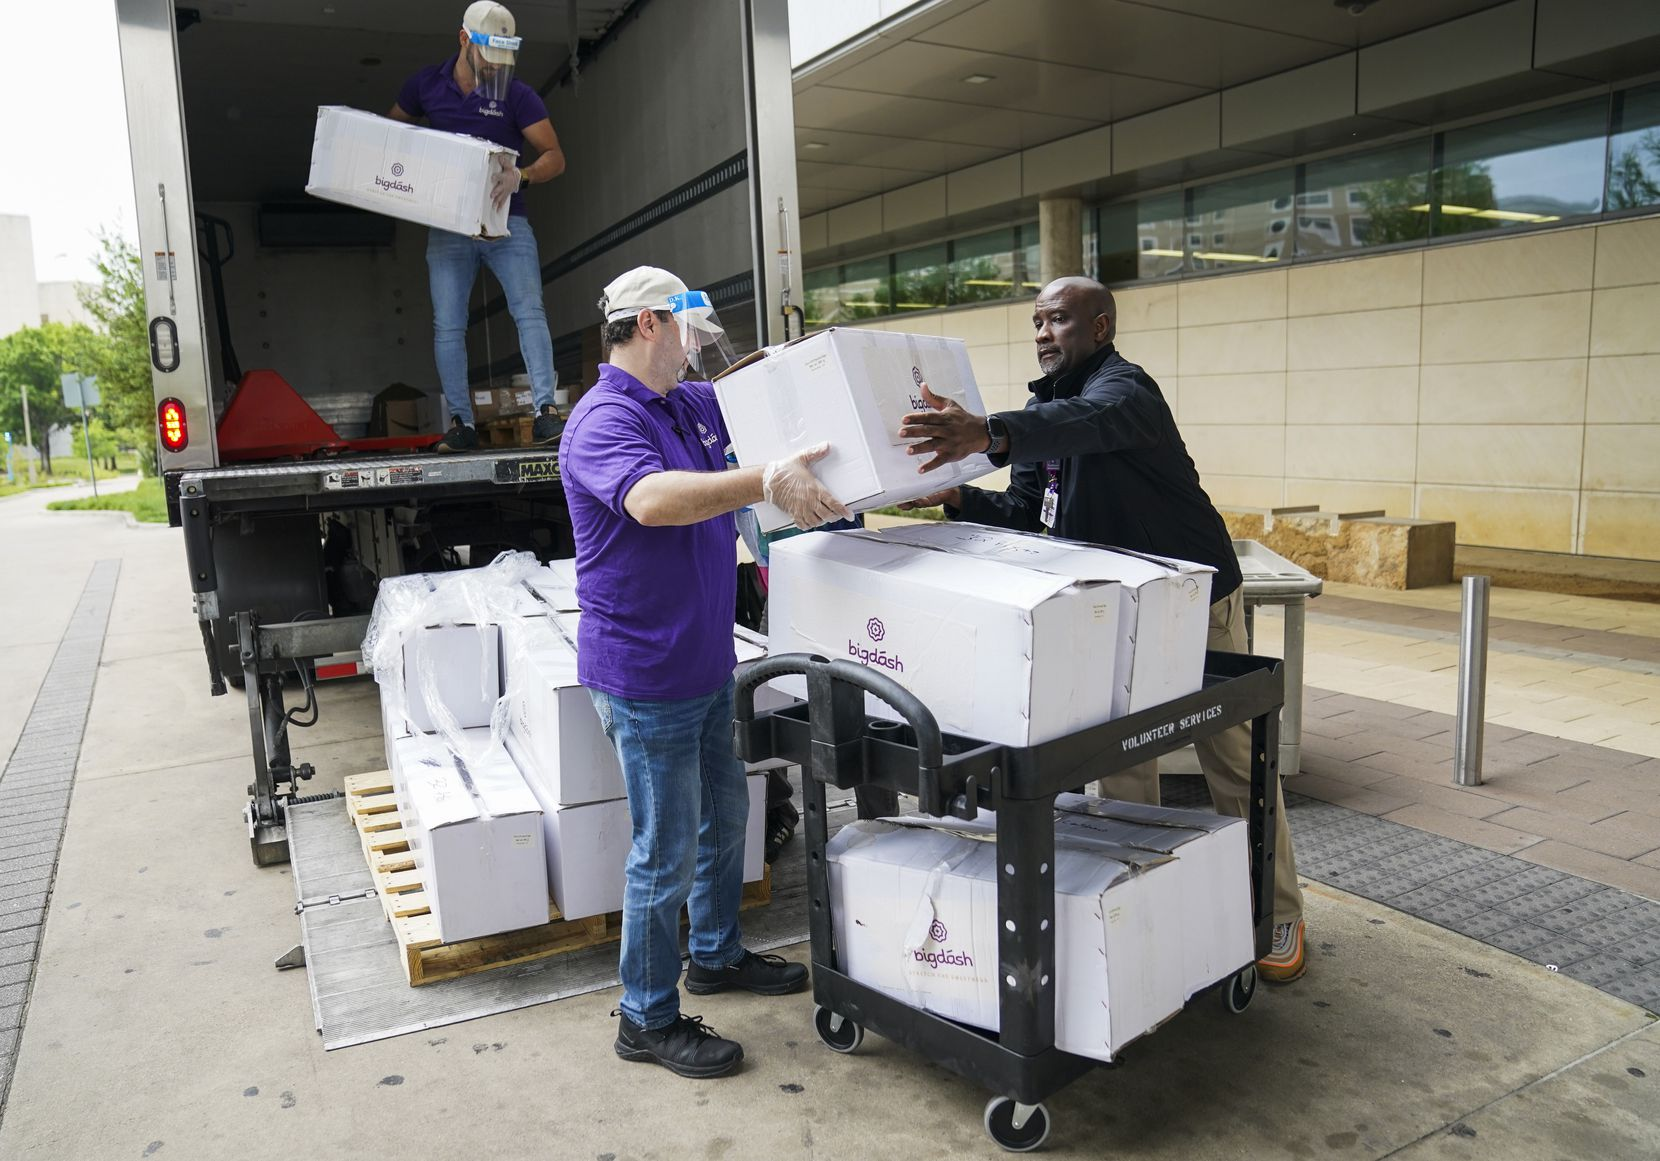 Abdullah Mahdi (left) and Kareem Alrefaai (center) of  Bigdash Ice Cream & Pastries drop off desserts with guest services manager Delra Lacy at Parkland Hospital on Friday, April 17, 2020 in Dallas. Restaurants dropped off over 1,000 meals and 1,500 desserts for doctors, nurses and staff  The effort was organized by local Muslim business leaders. (Ashley Landis/The Dallas Morning News)